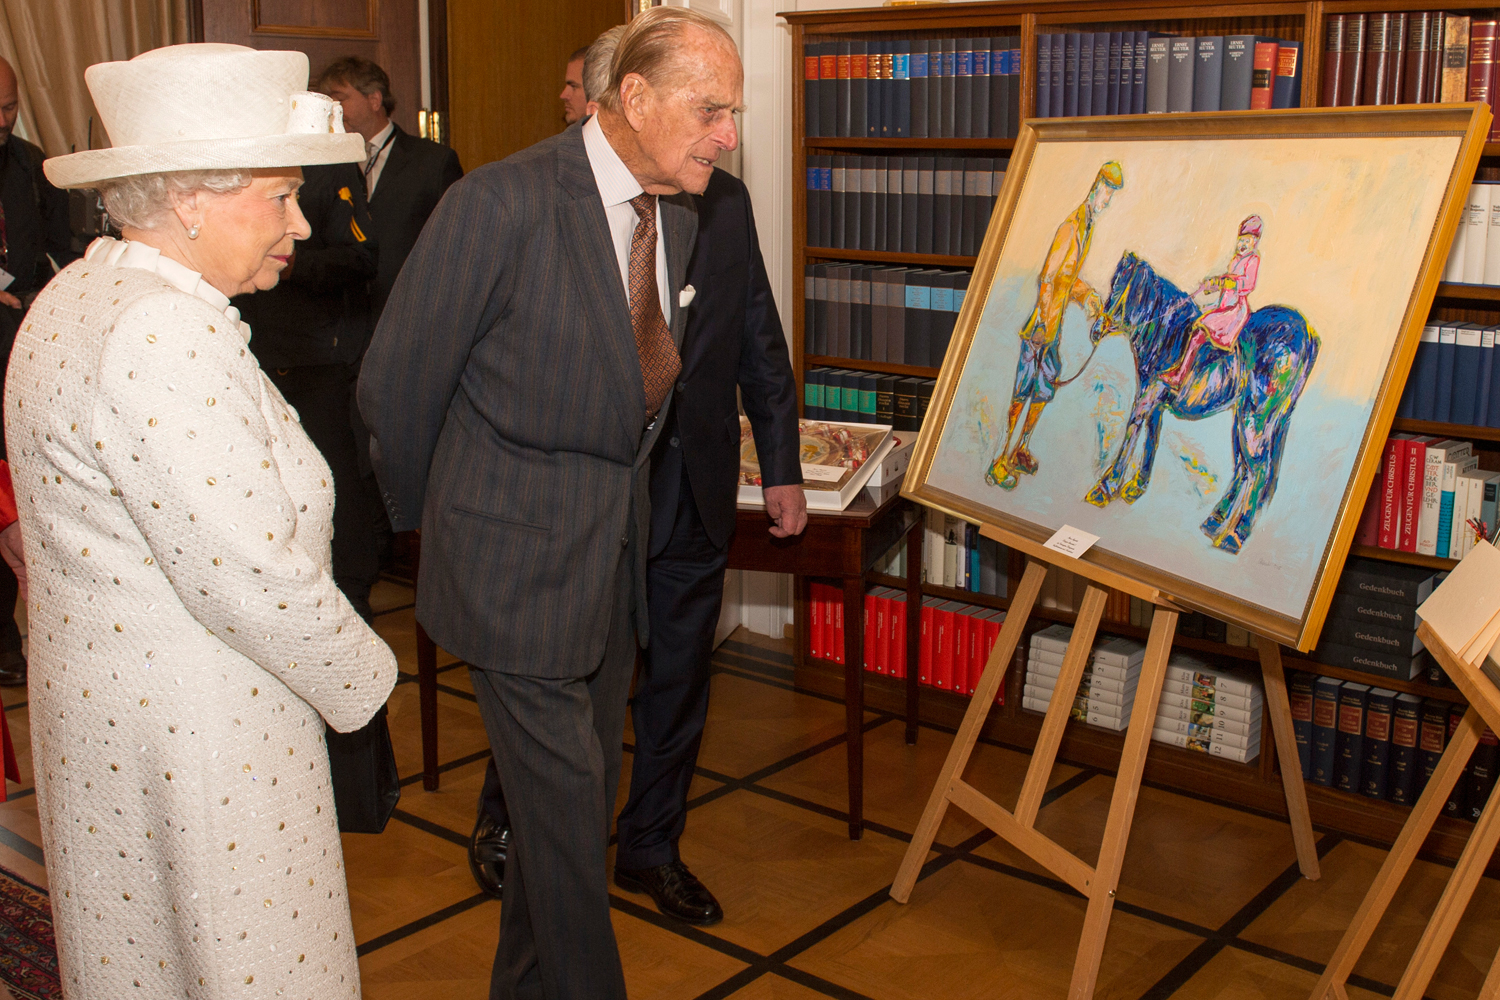 Britain's Queen Elizabeth and Prince Philip look at a painting presented to her during a visit to Germany's President's official residence, in Berlin, Germany, June 24, 2015.